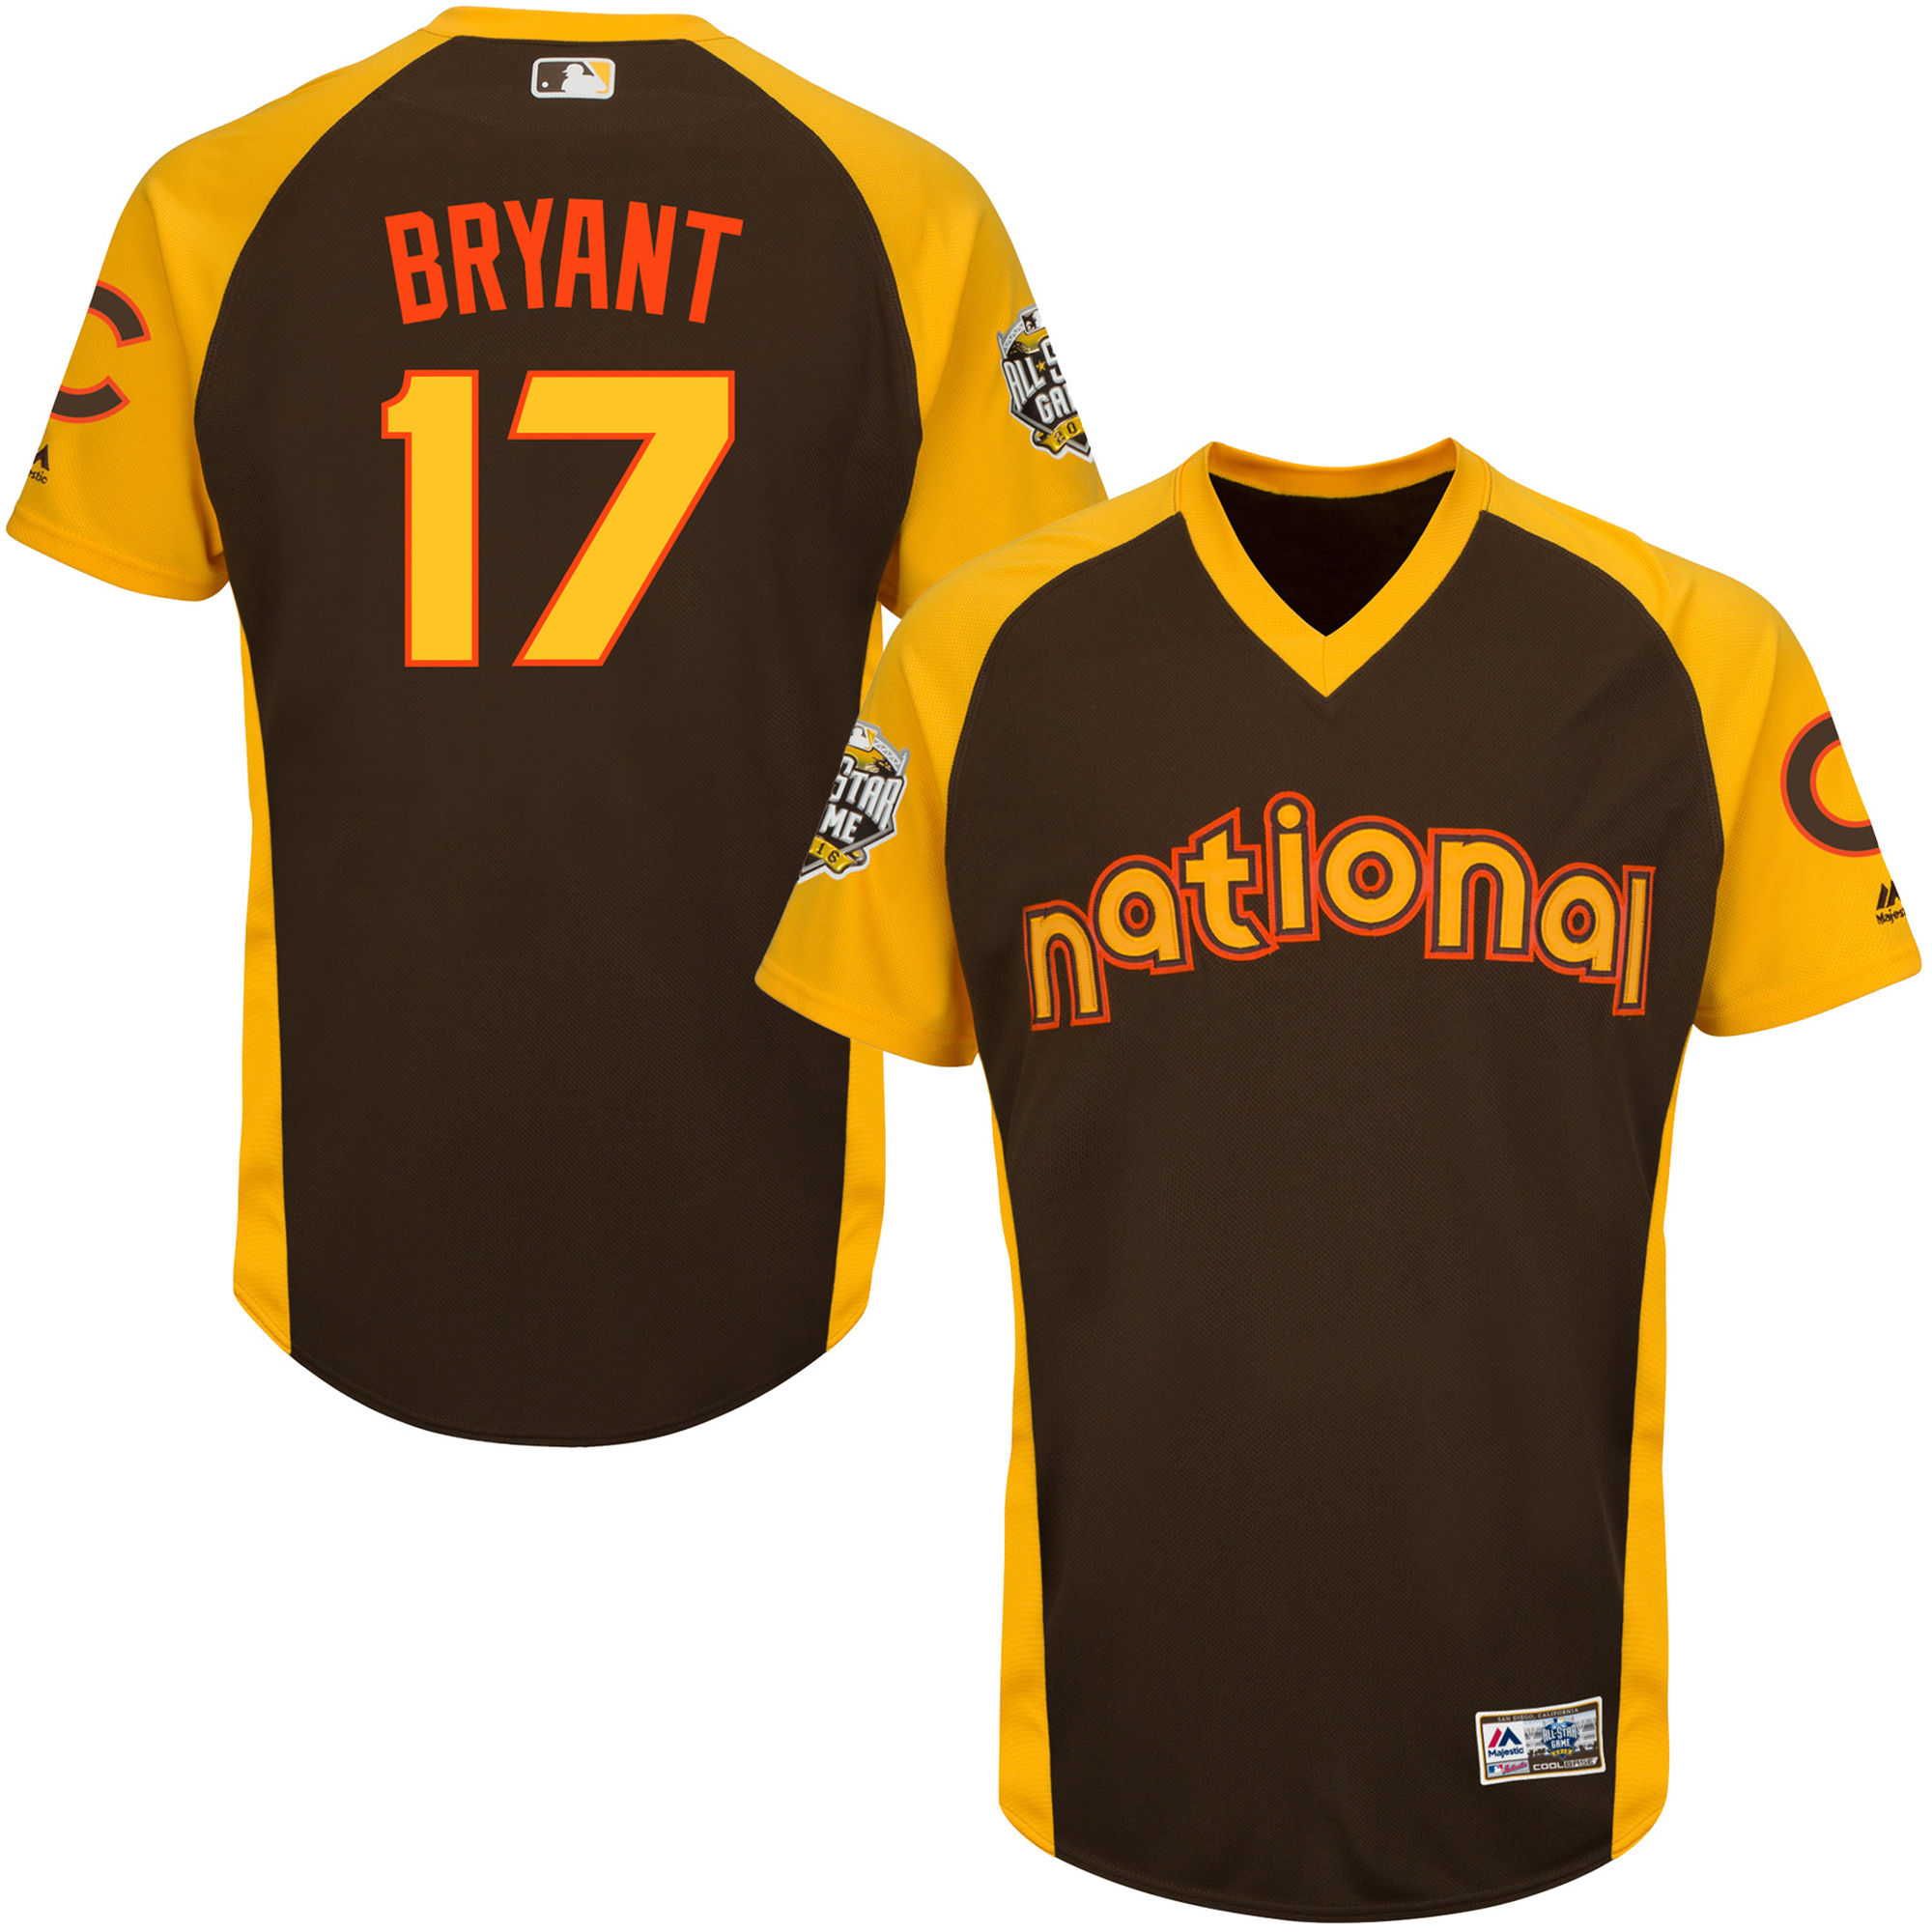 Cubs 17 Kris Bryant Brown Youth 2016 All-Star Game Cool Base Batting Practice Player Jersey